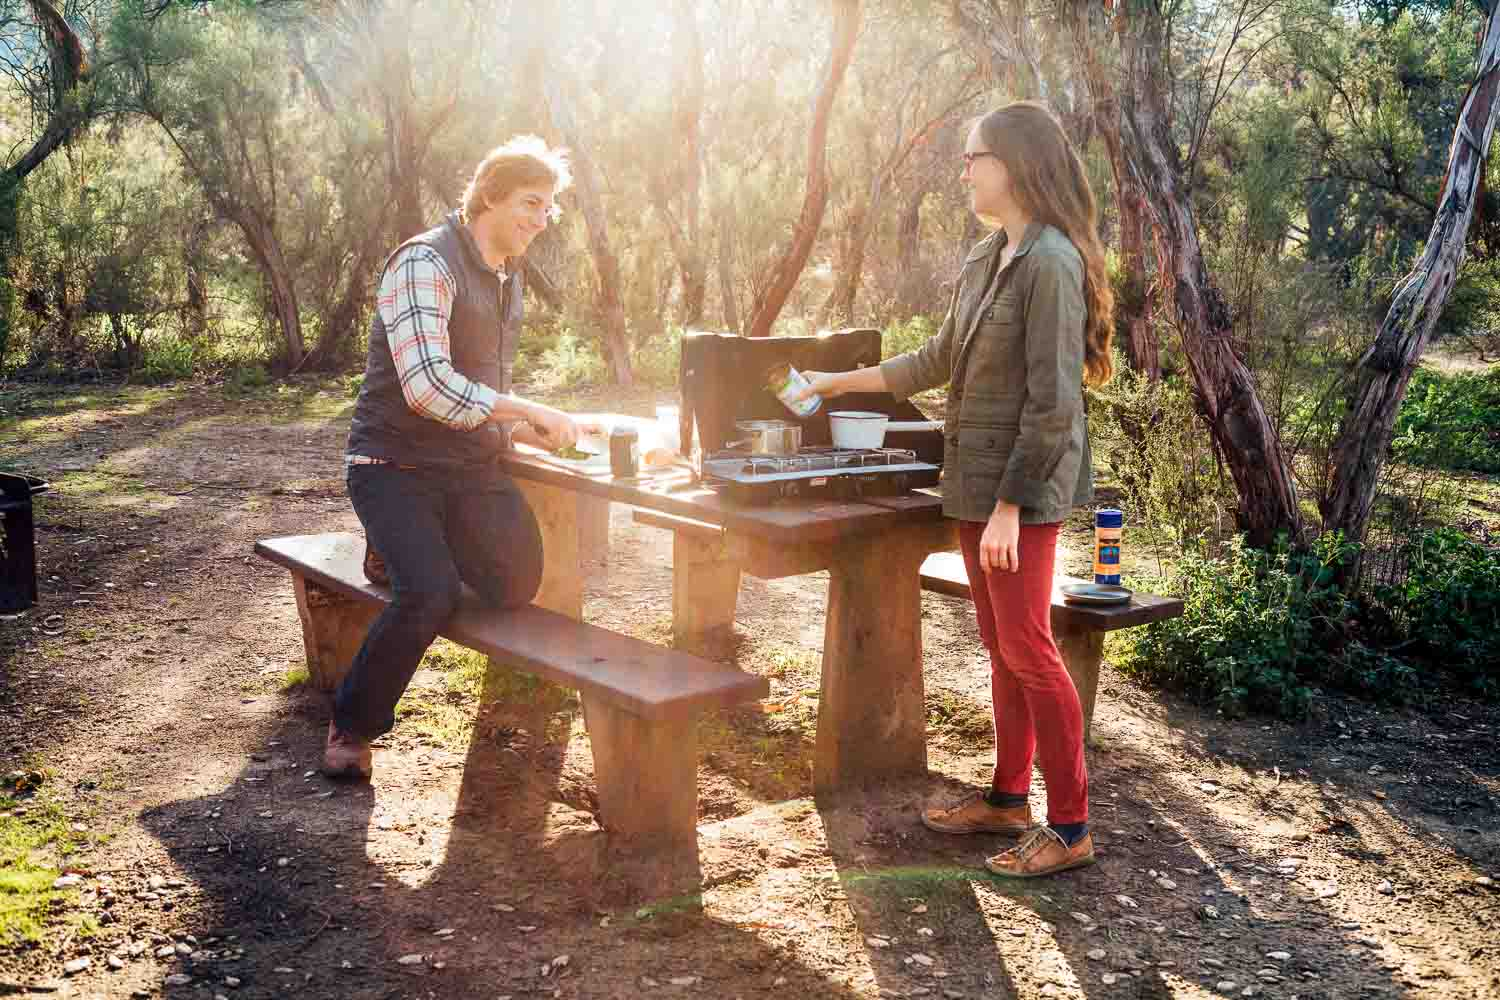 Man and woman at a campsite cooking a meal on a camping stove.